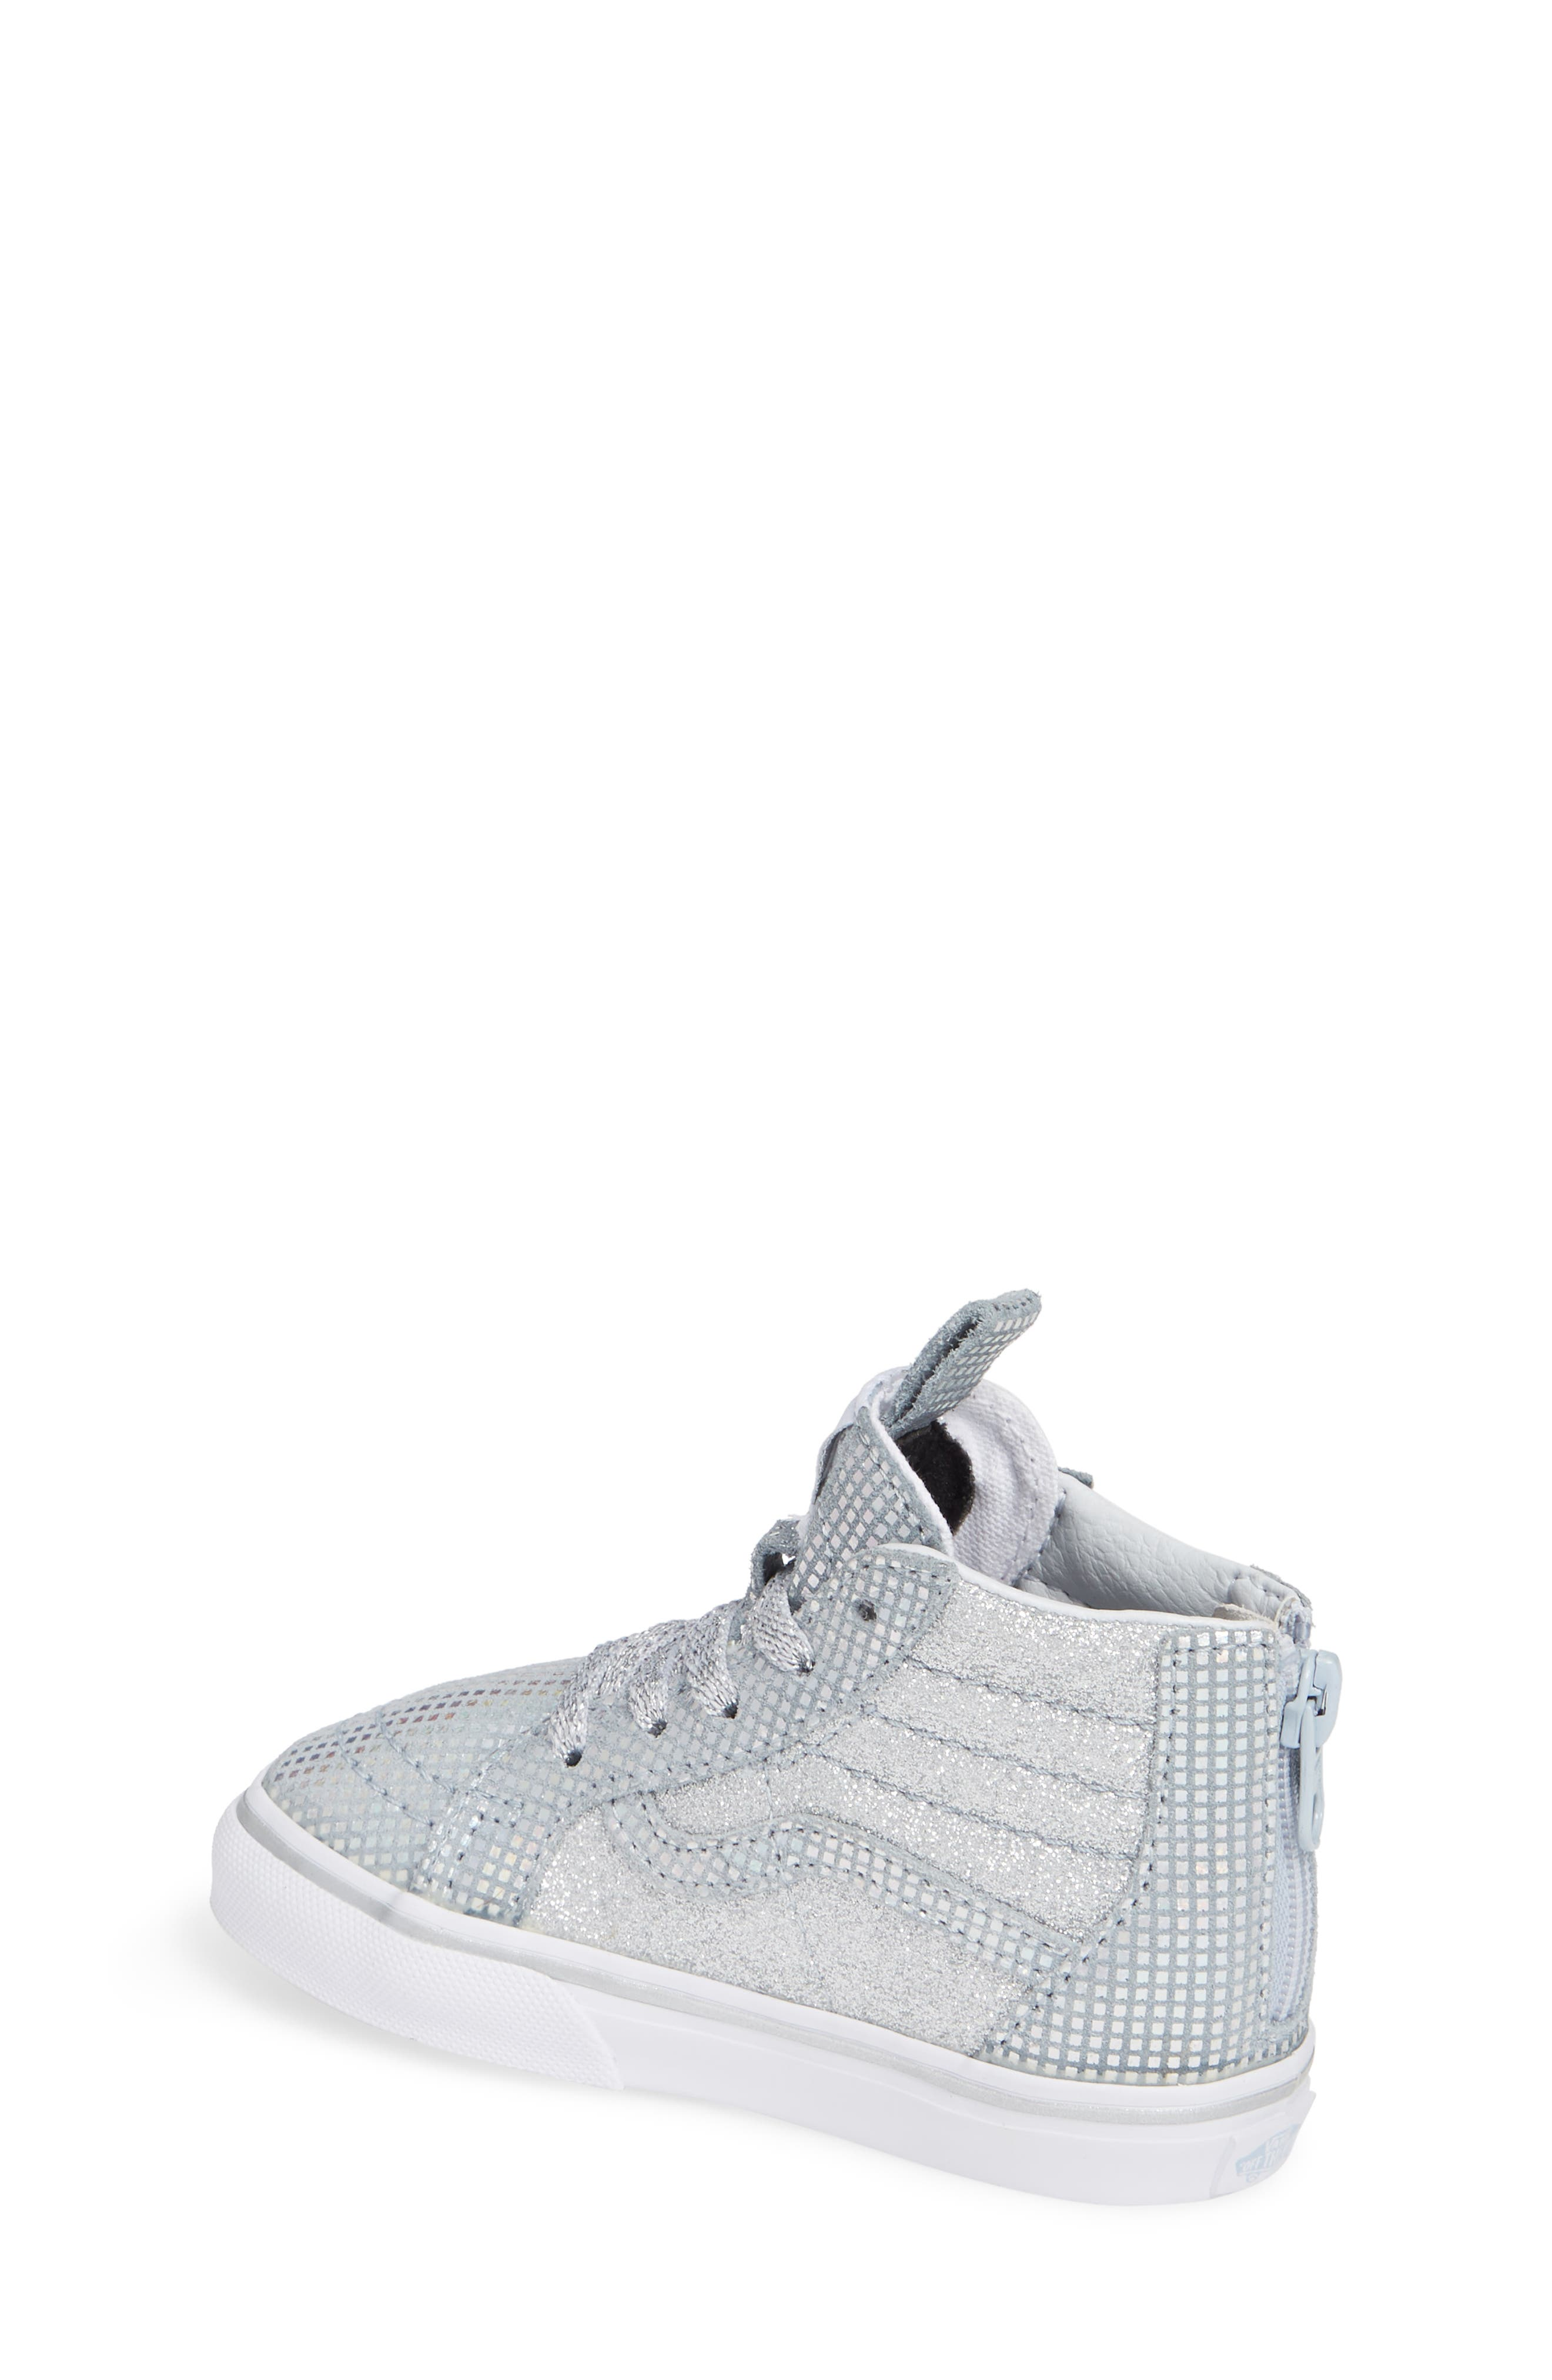 SK8-Hi Zip Sparkle Sneaker,                             Alternate thumbnail 2, color,                             METALLIC SILVER GLITTER